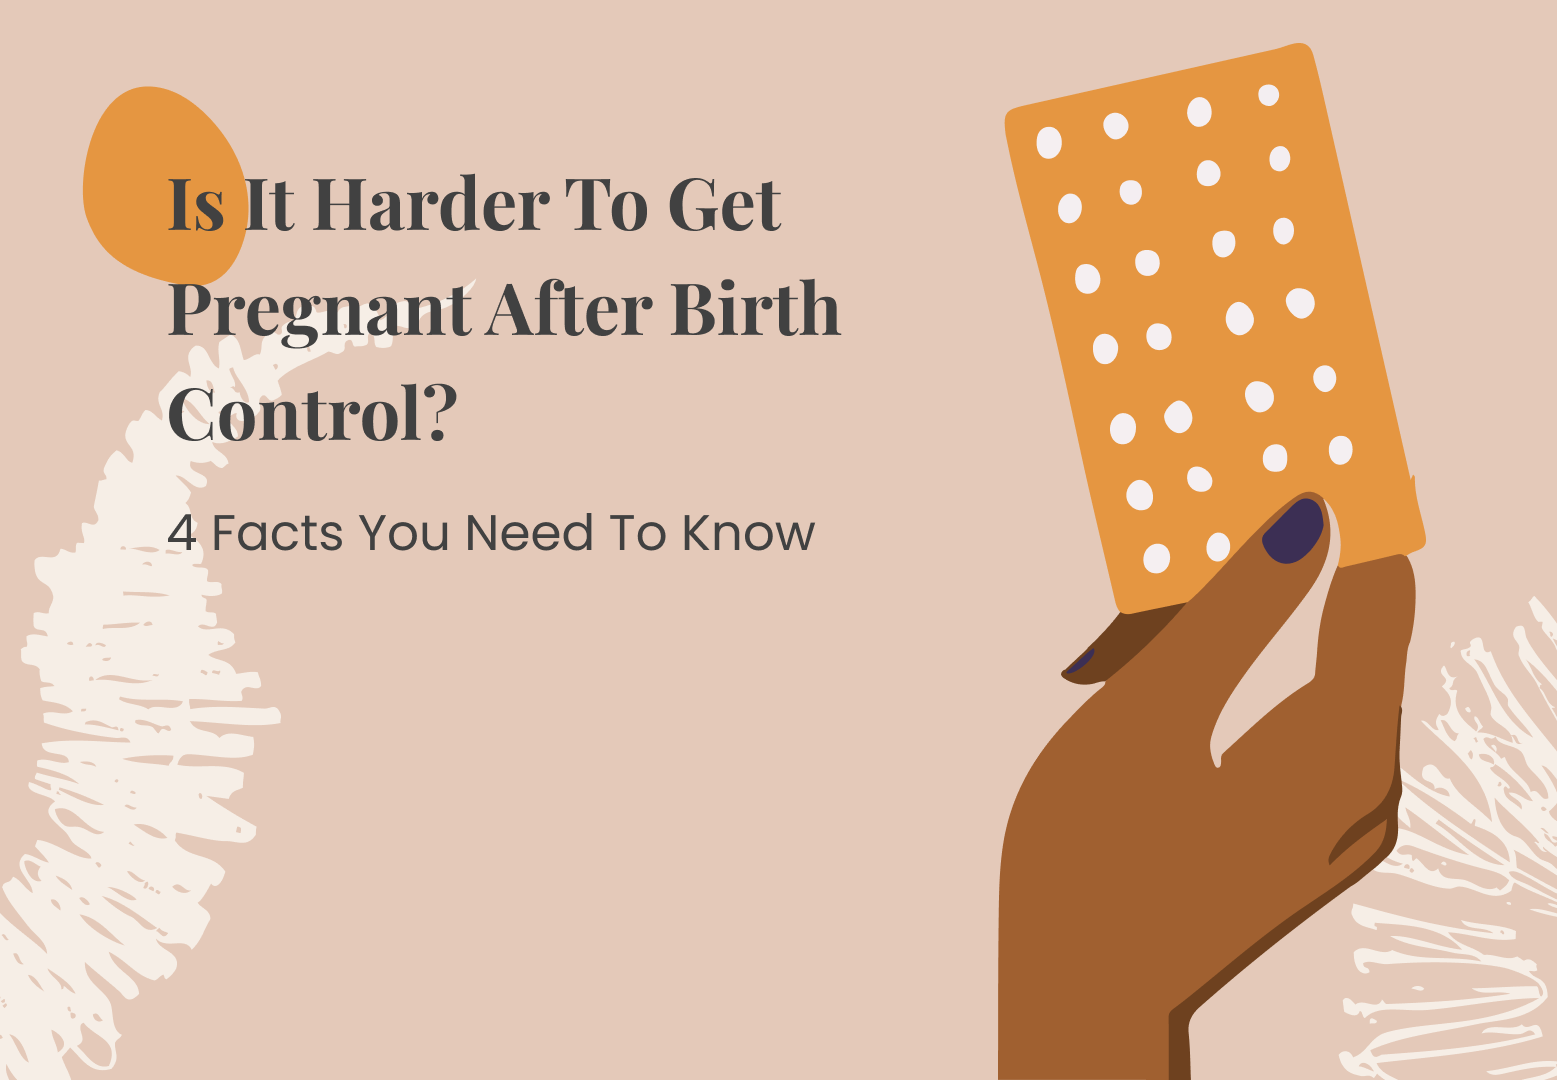 Is It Harder To Get Pregnant After Birth Control? 4 Must-Knows